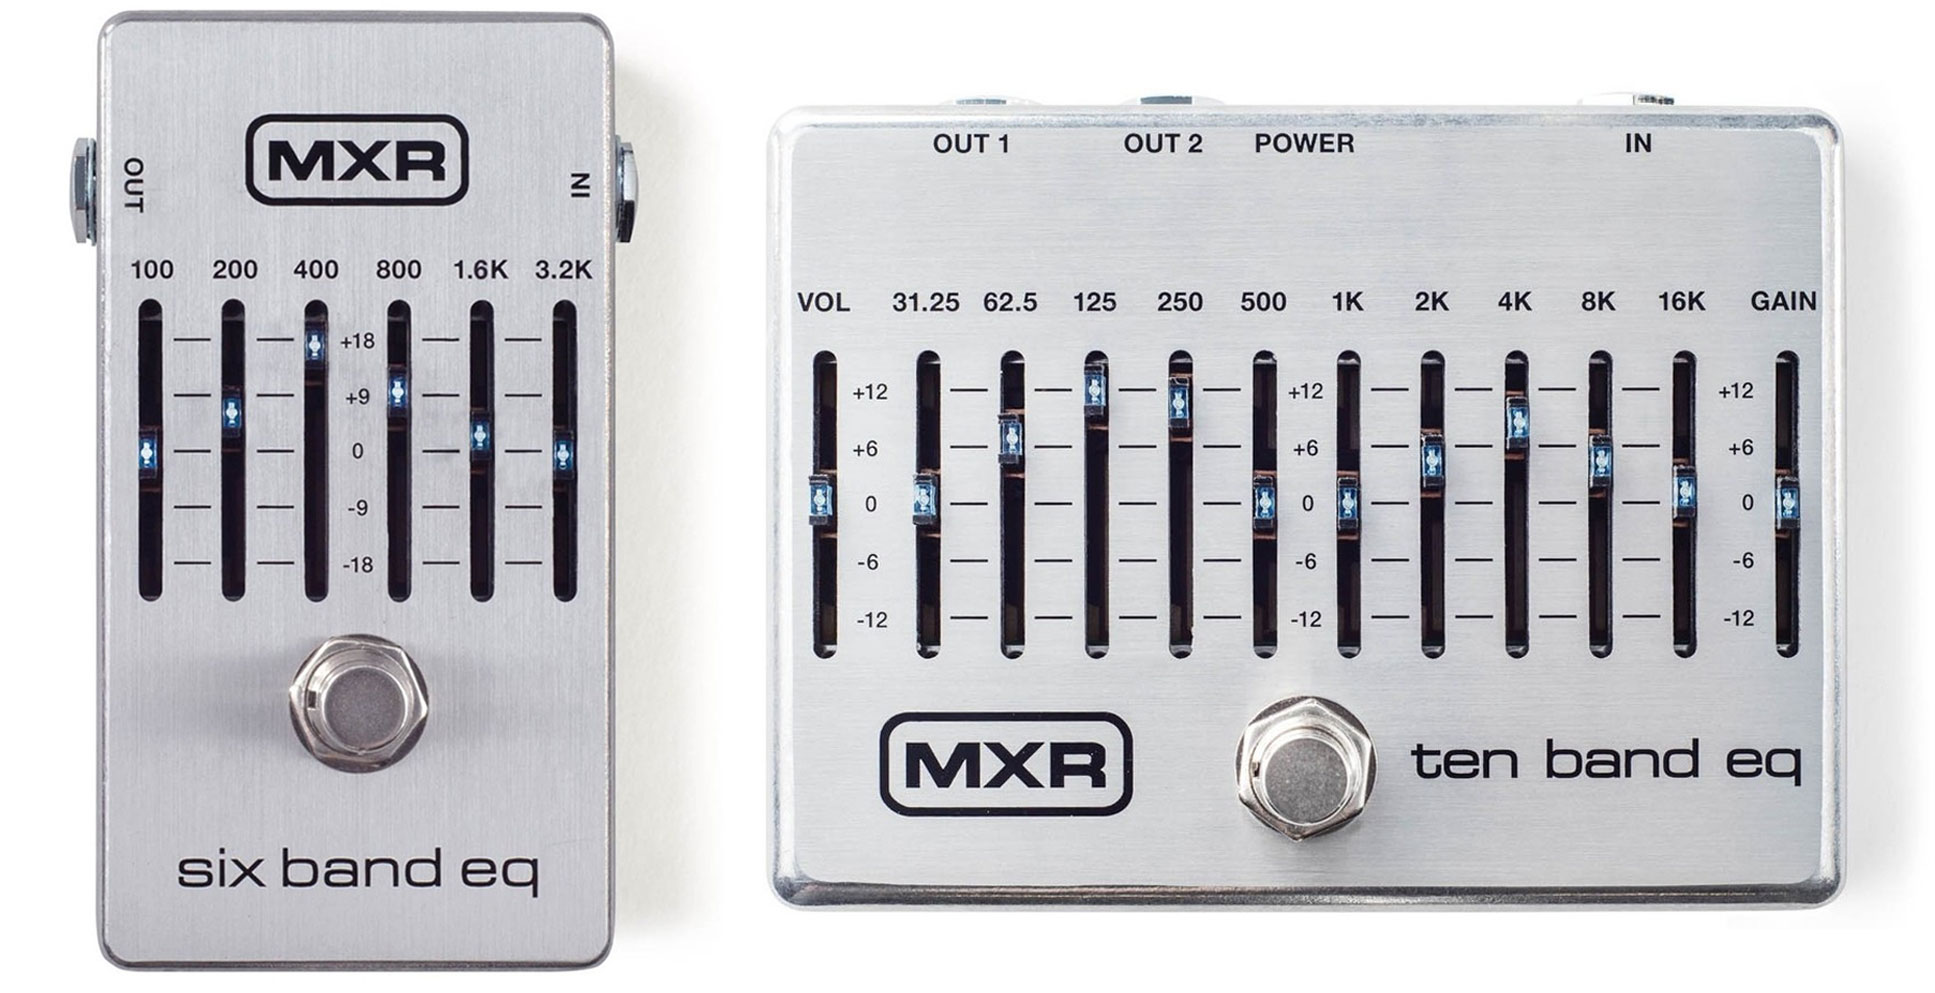 3 Creative Ways You Can Use An Eq Pedal Andertons Blog Electro Harmonix Graphic Equalizer This Includes Popular Mxrs 6 Band And 10 Units While We Suggest Sticking To Boosting Frequencies For A Lead Kick Volume Still Be King In